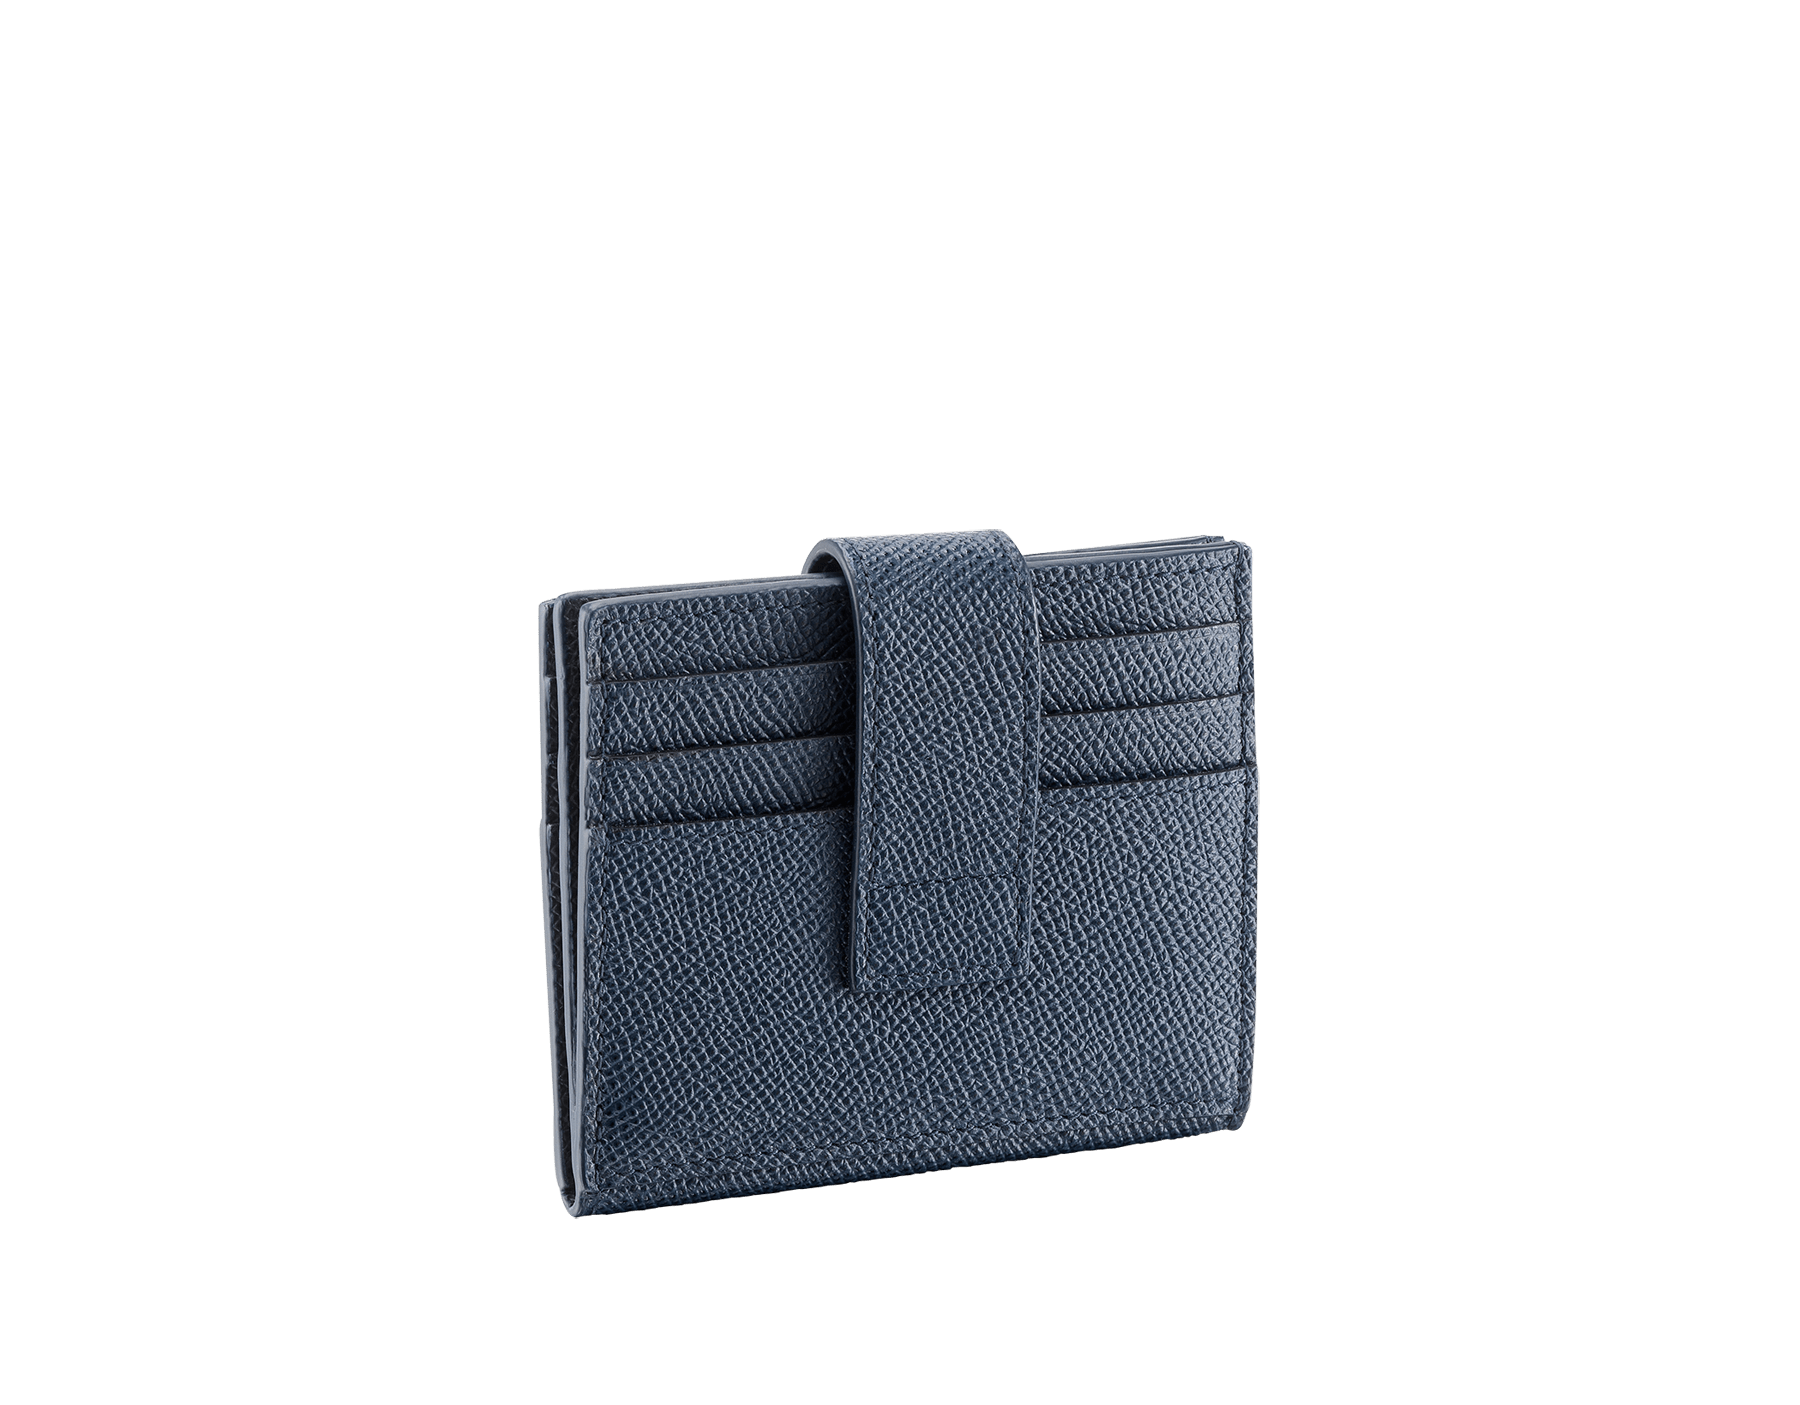 BVLGARI BVLGARI folded credit card holder in denim sapphire and charcoal diamond grain calf leather. Iconic logo décor in palladium plated brass. 289235 image 3